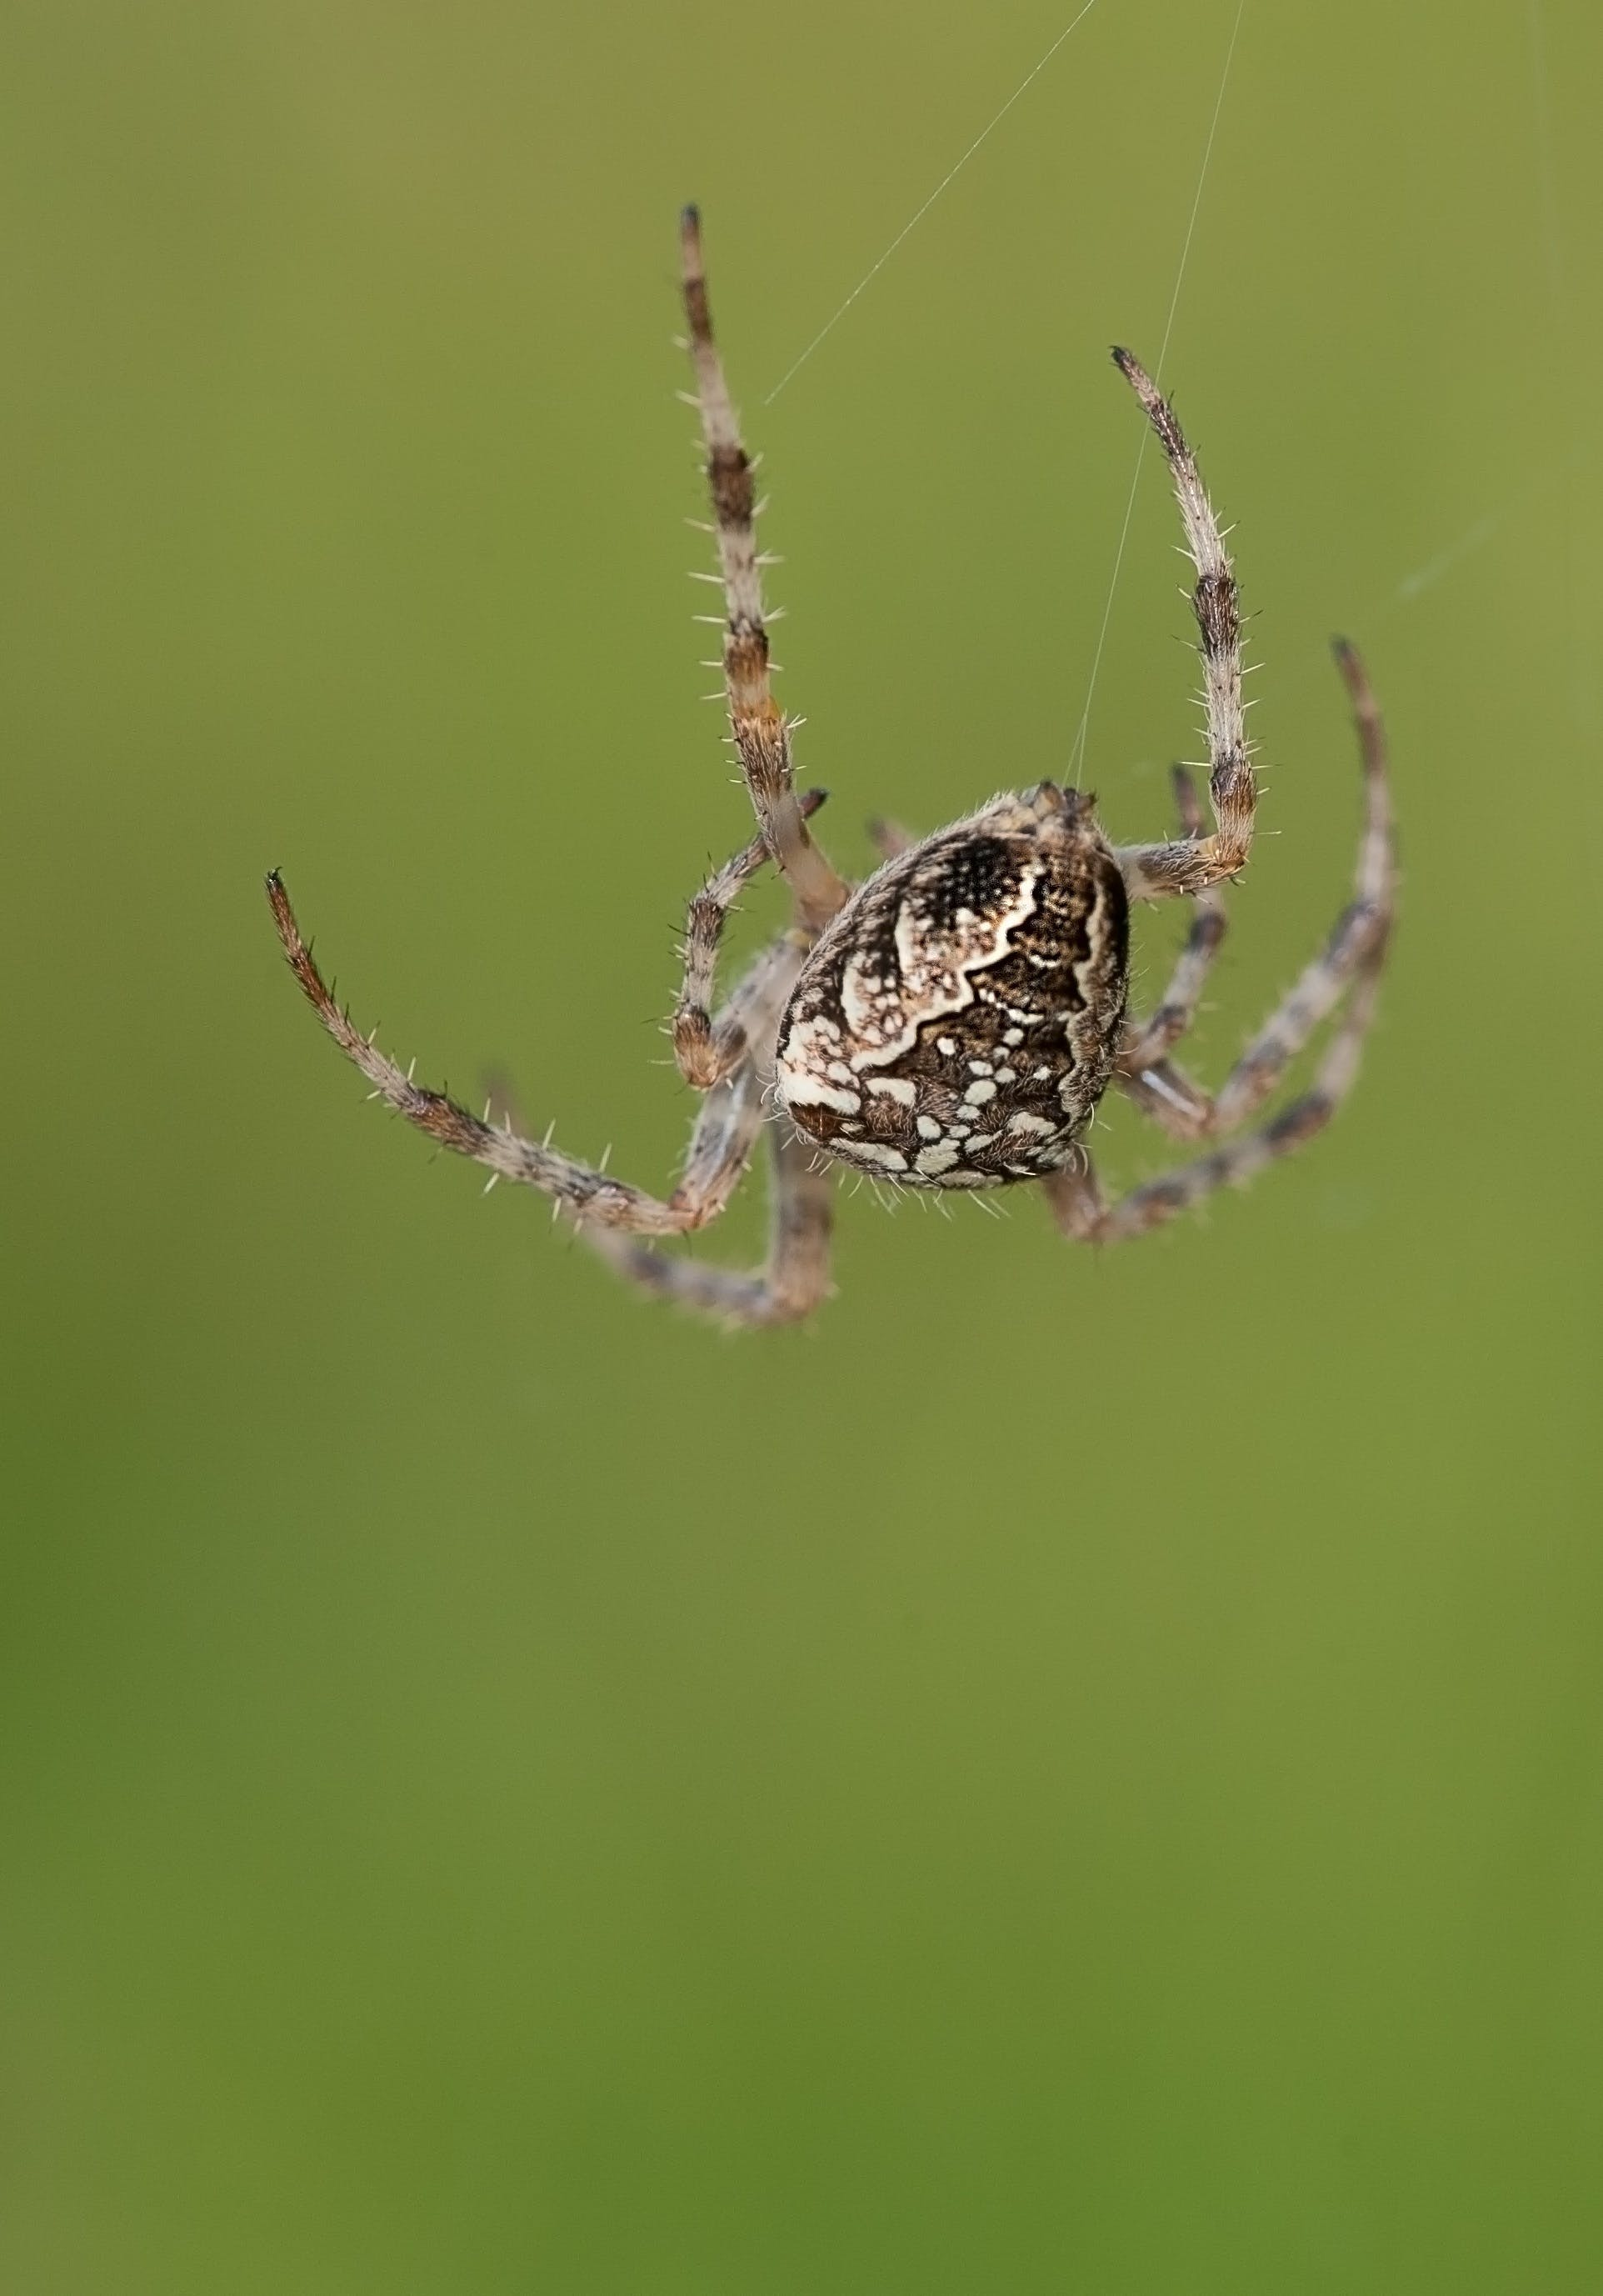 Brown and White Spider Hanging on Its Web